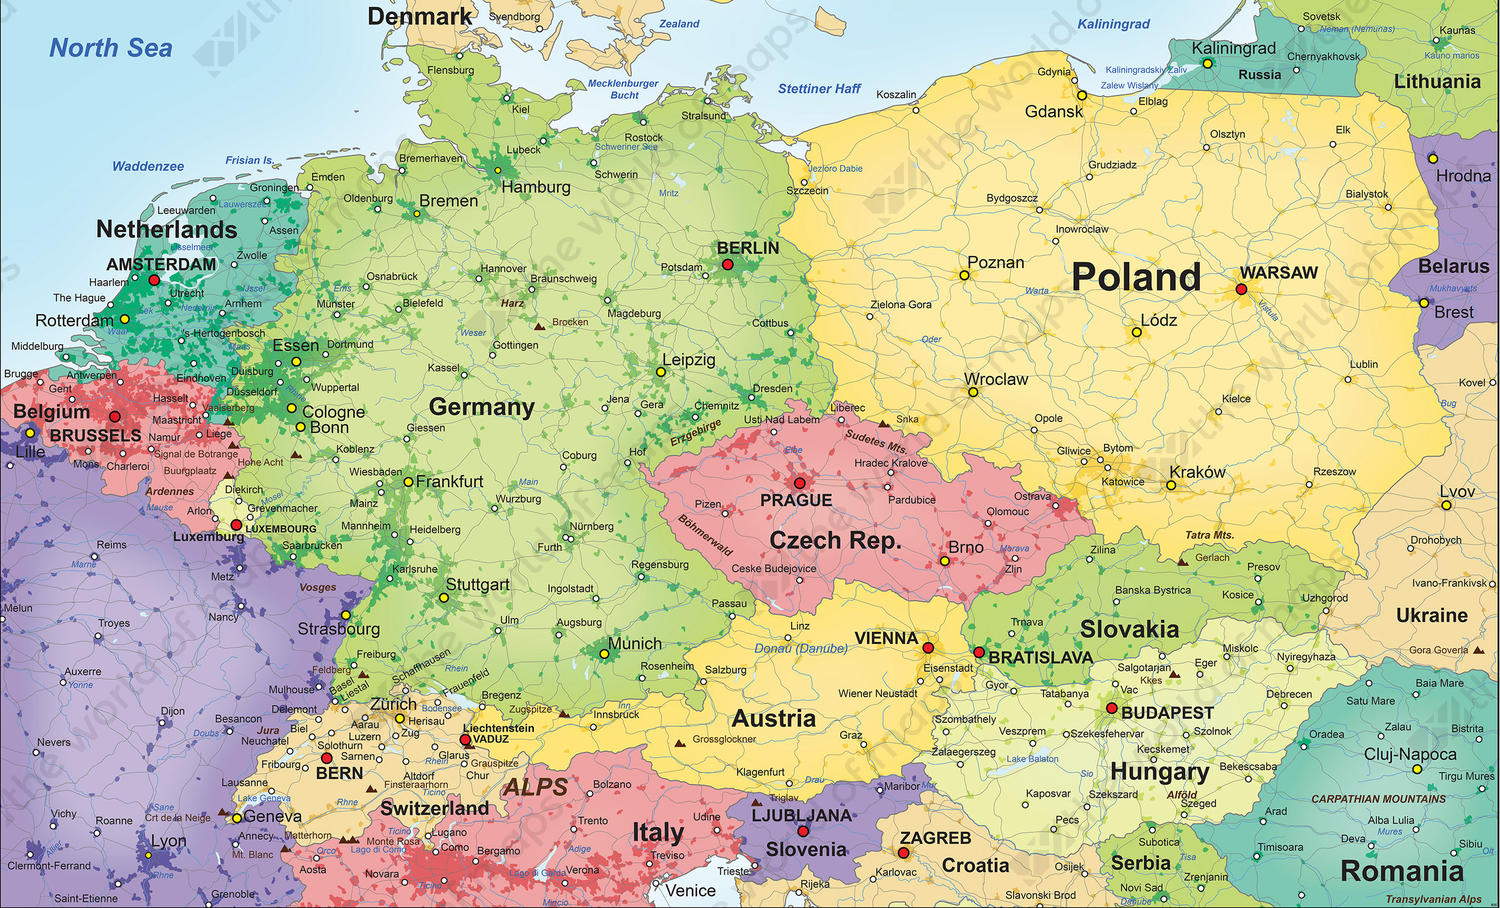 Political Vector Map Central Europe 835 The World of Mapscom